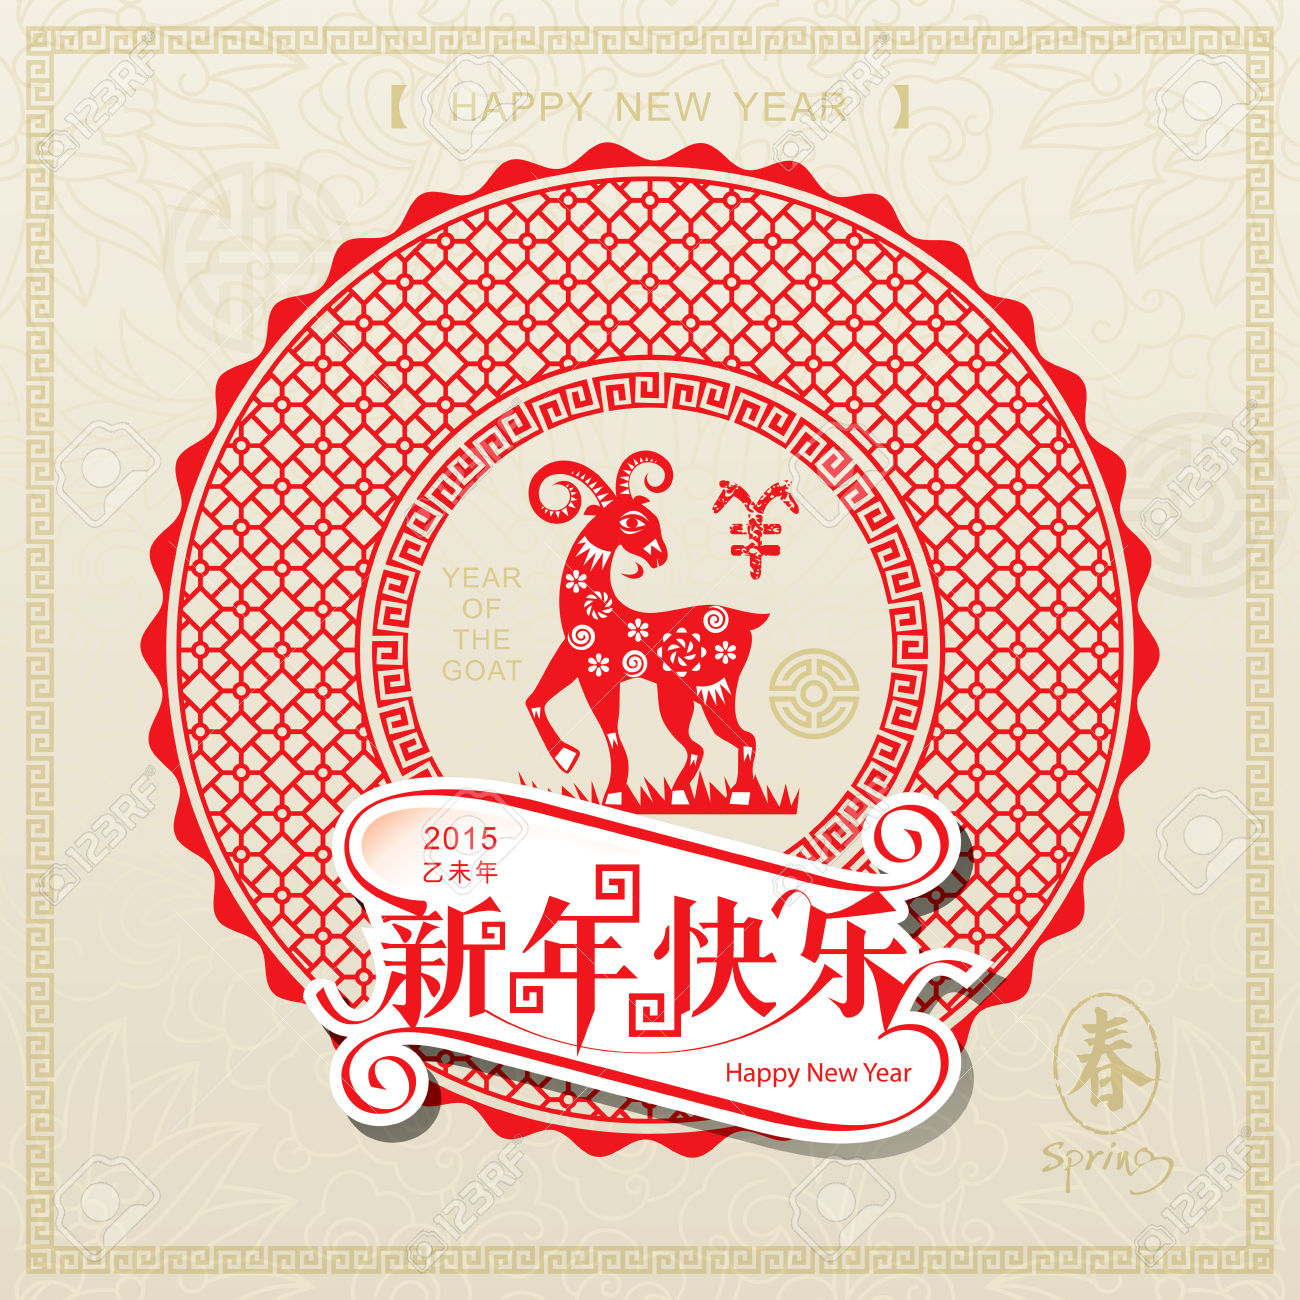 32063540-Happy-Chinese-New-Year-decorative-year-of-the-goat-with-seamless-pattern-background--Stock-Vector.jpg